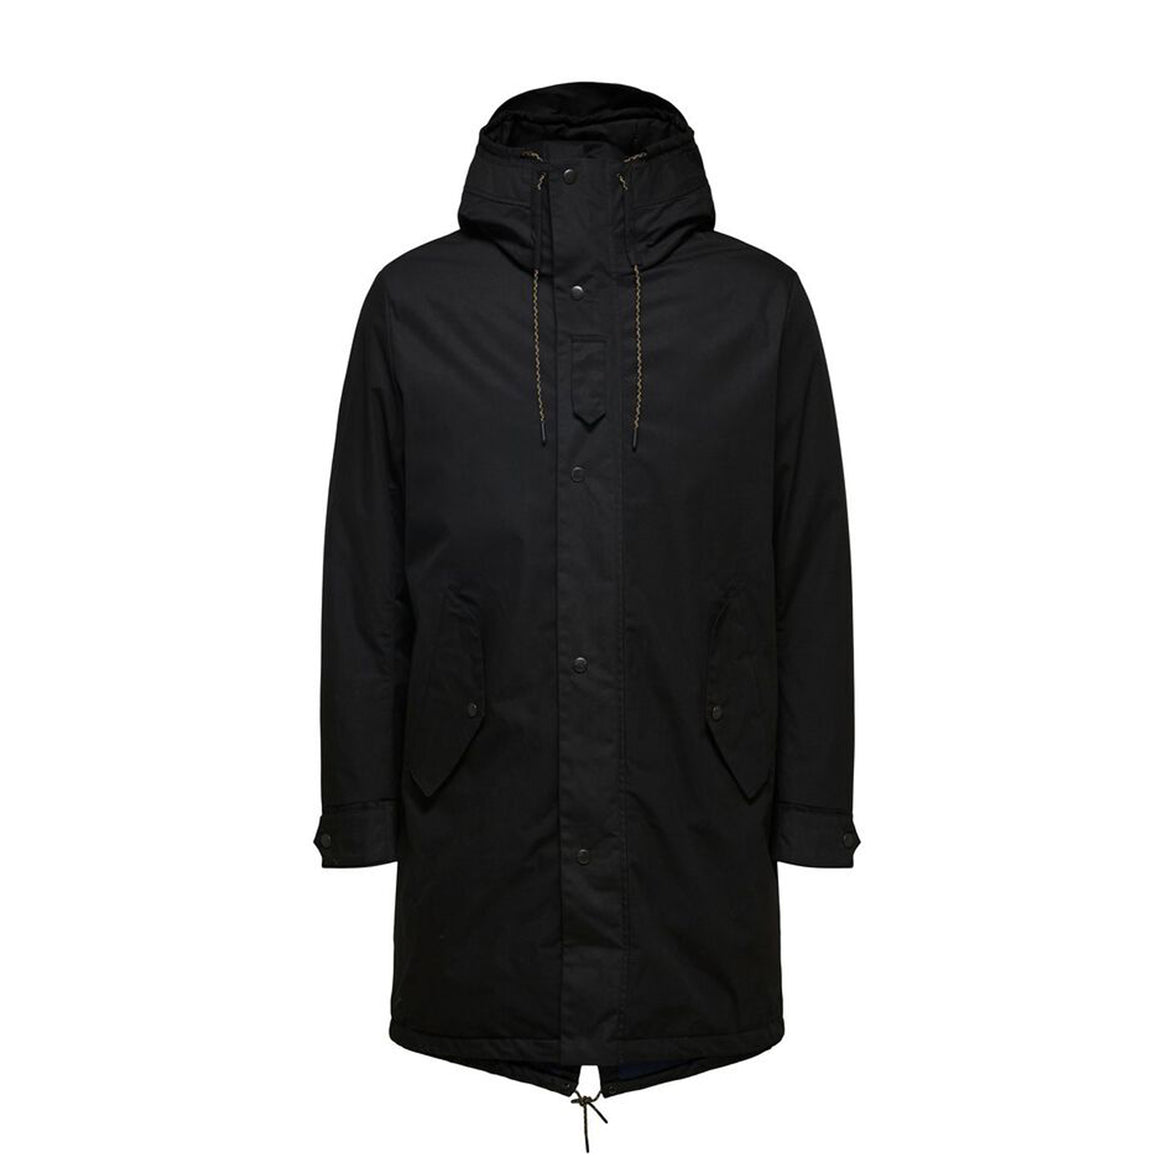 SLH Sustainable Iconics Parka for Men in Black